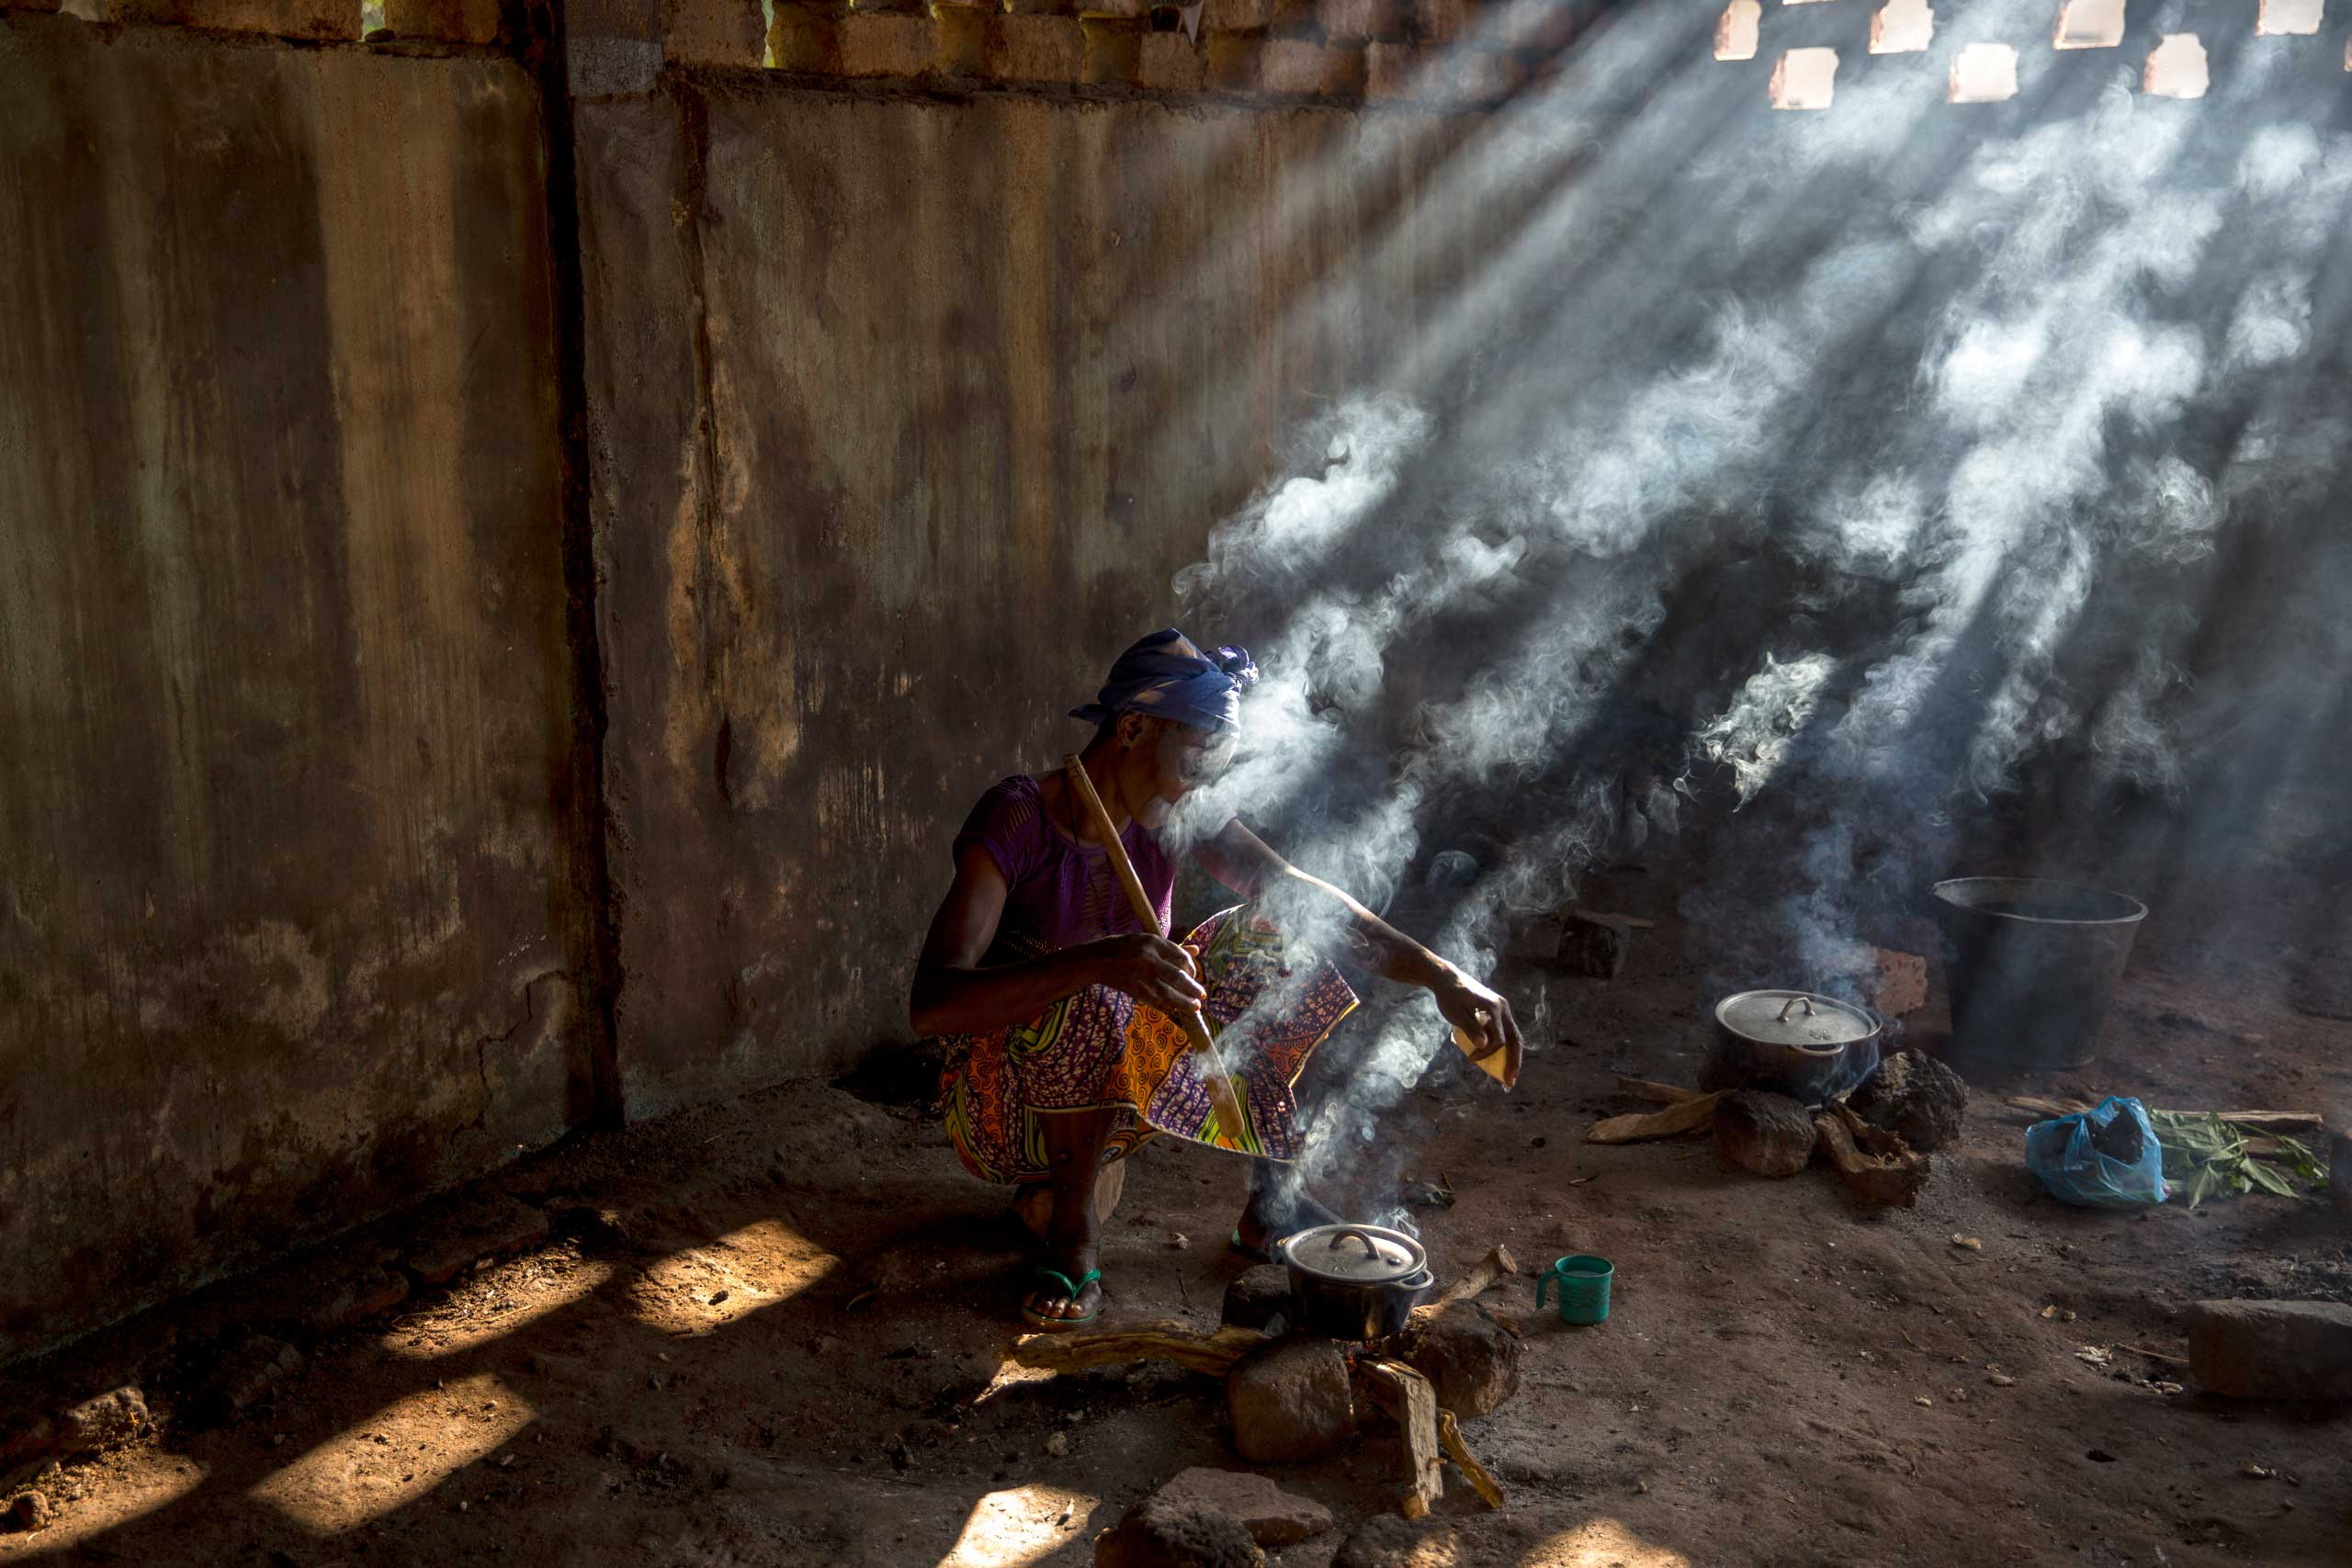 A woman cooks in the hospital coumpound. Bambari, Central African Republic. Sept. 24, 2014.